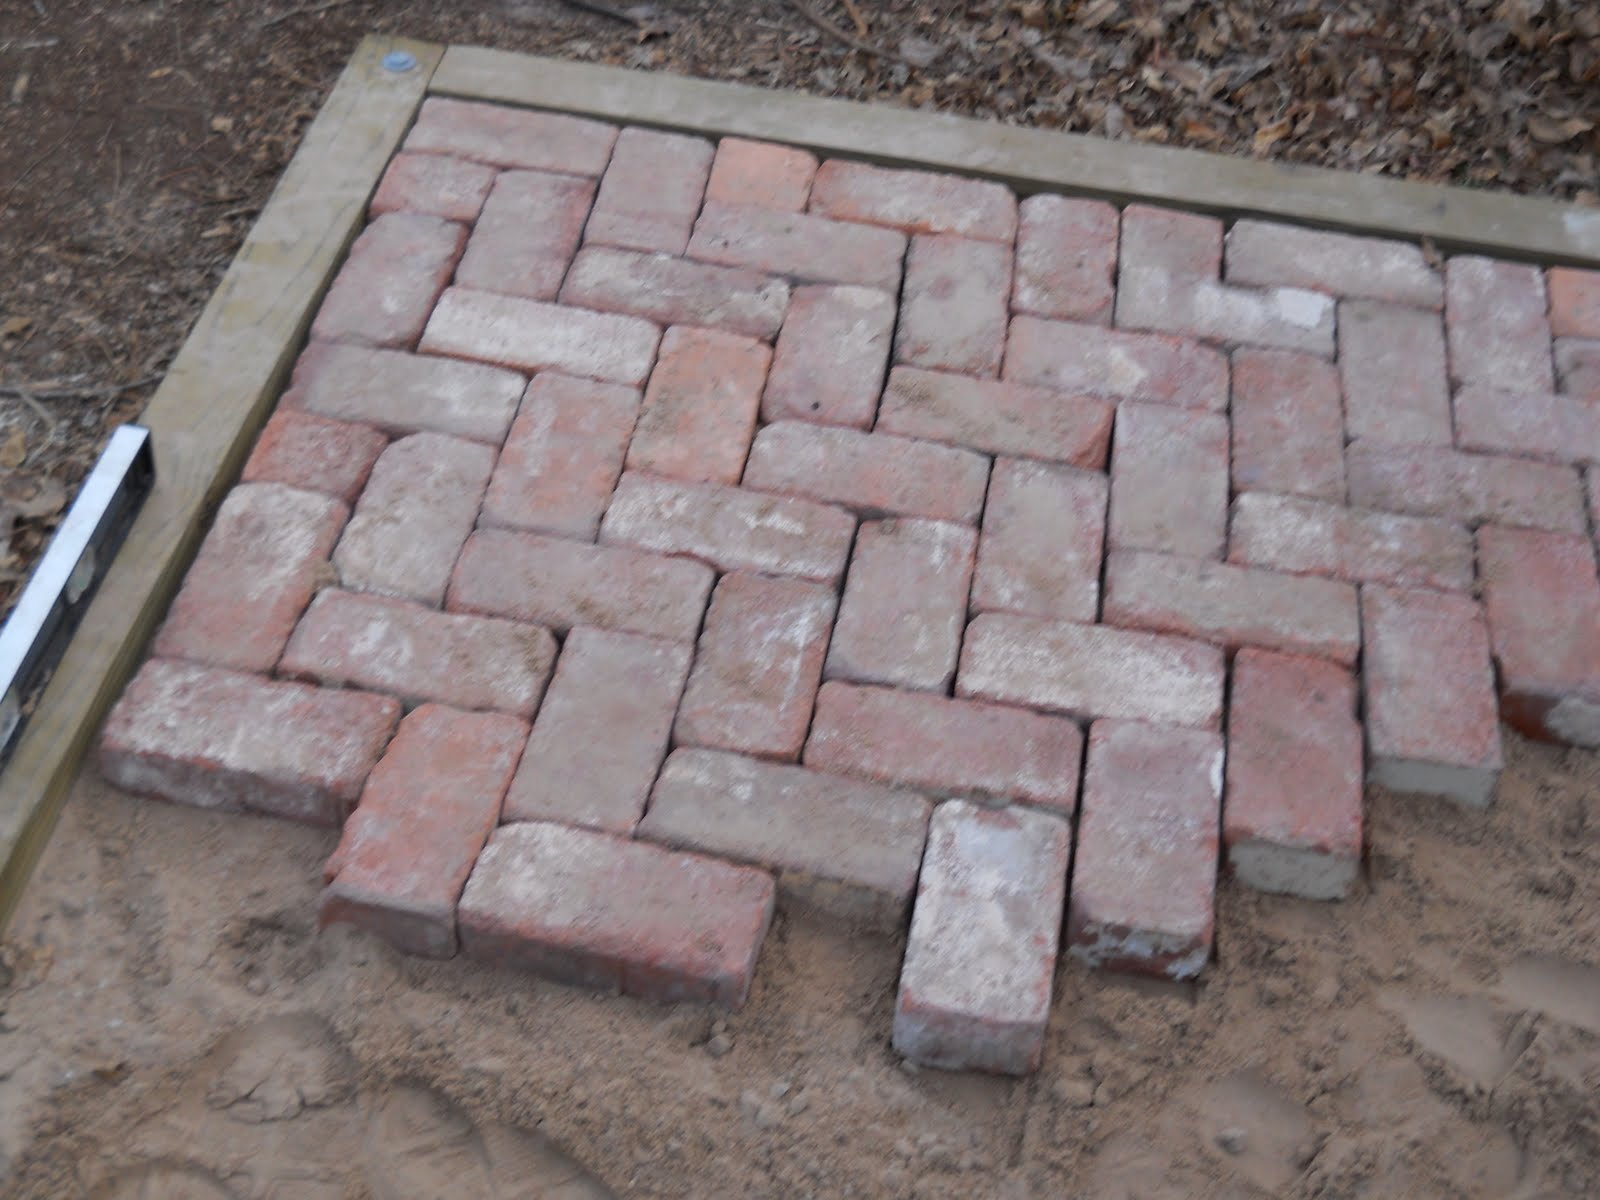 Oklahoma projects around the house diy brick patio for Diy brick projects